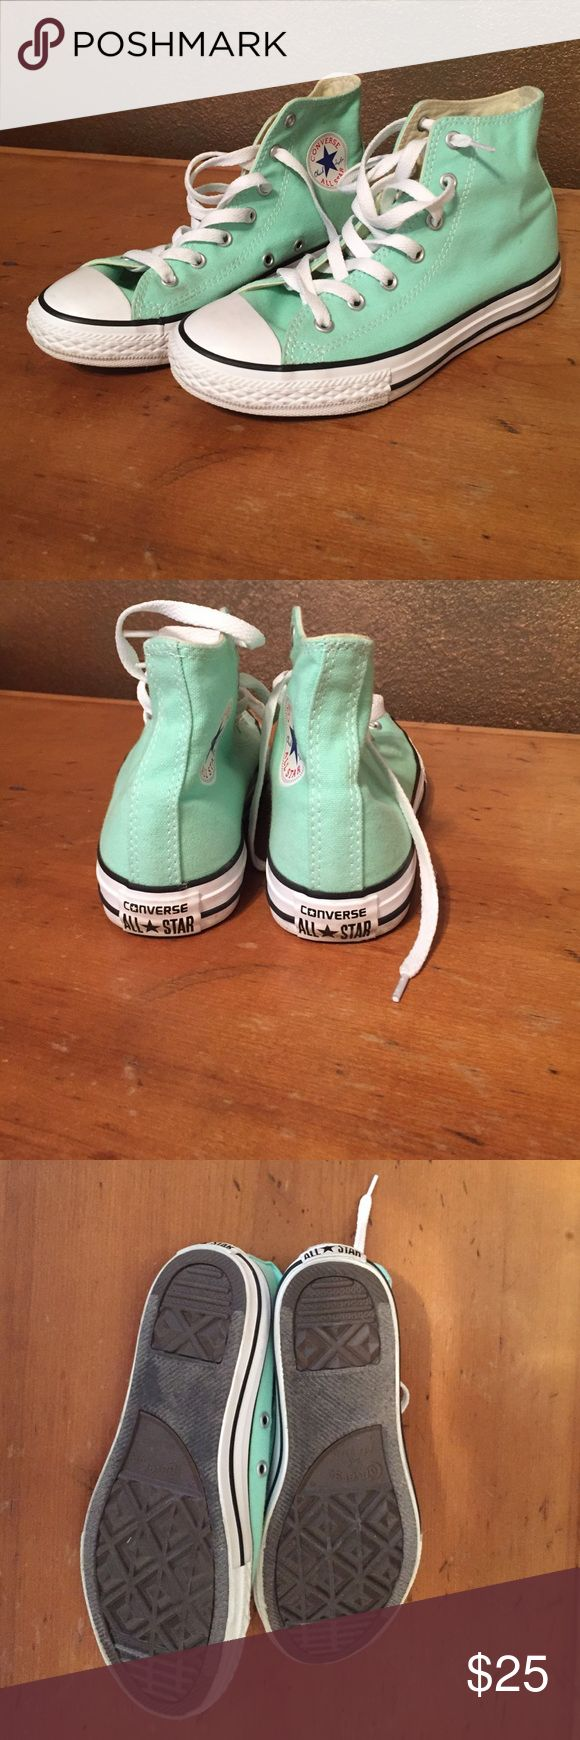 Mint green high top converse Super cute converse. Worn one time but have no signs of wear! Converse runs 1/2 large. Says size 3 kids, but have been informed this is a size 5 for women! Converse Shoes Sneakers